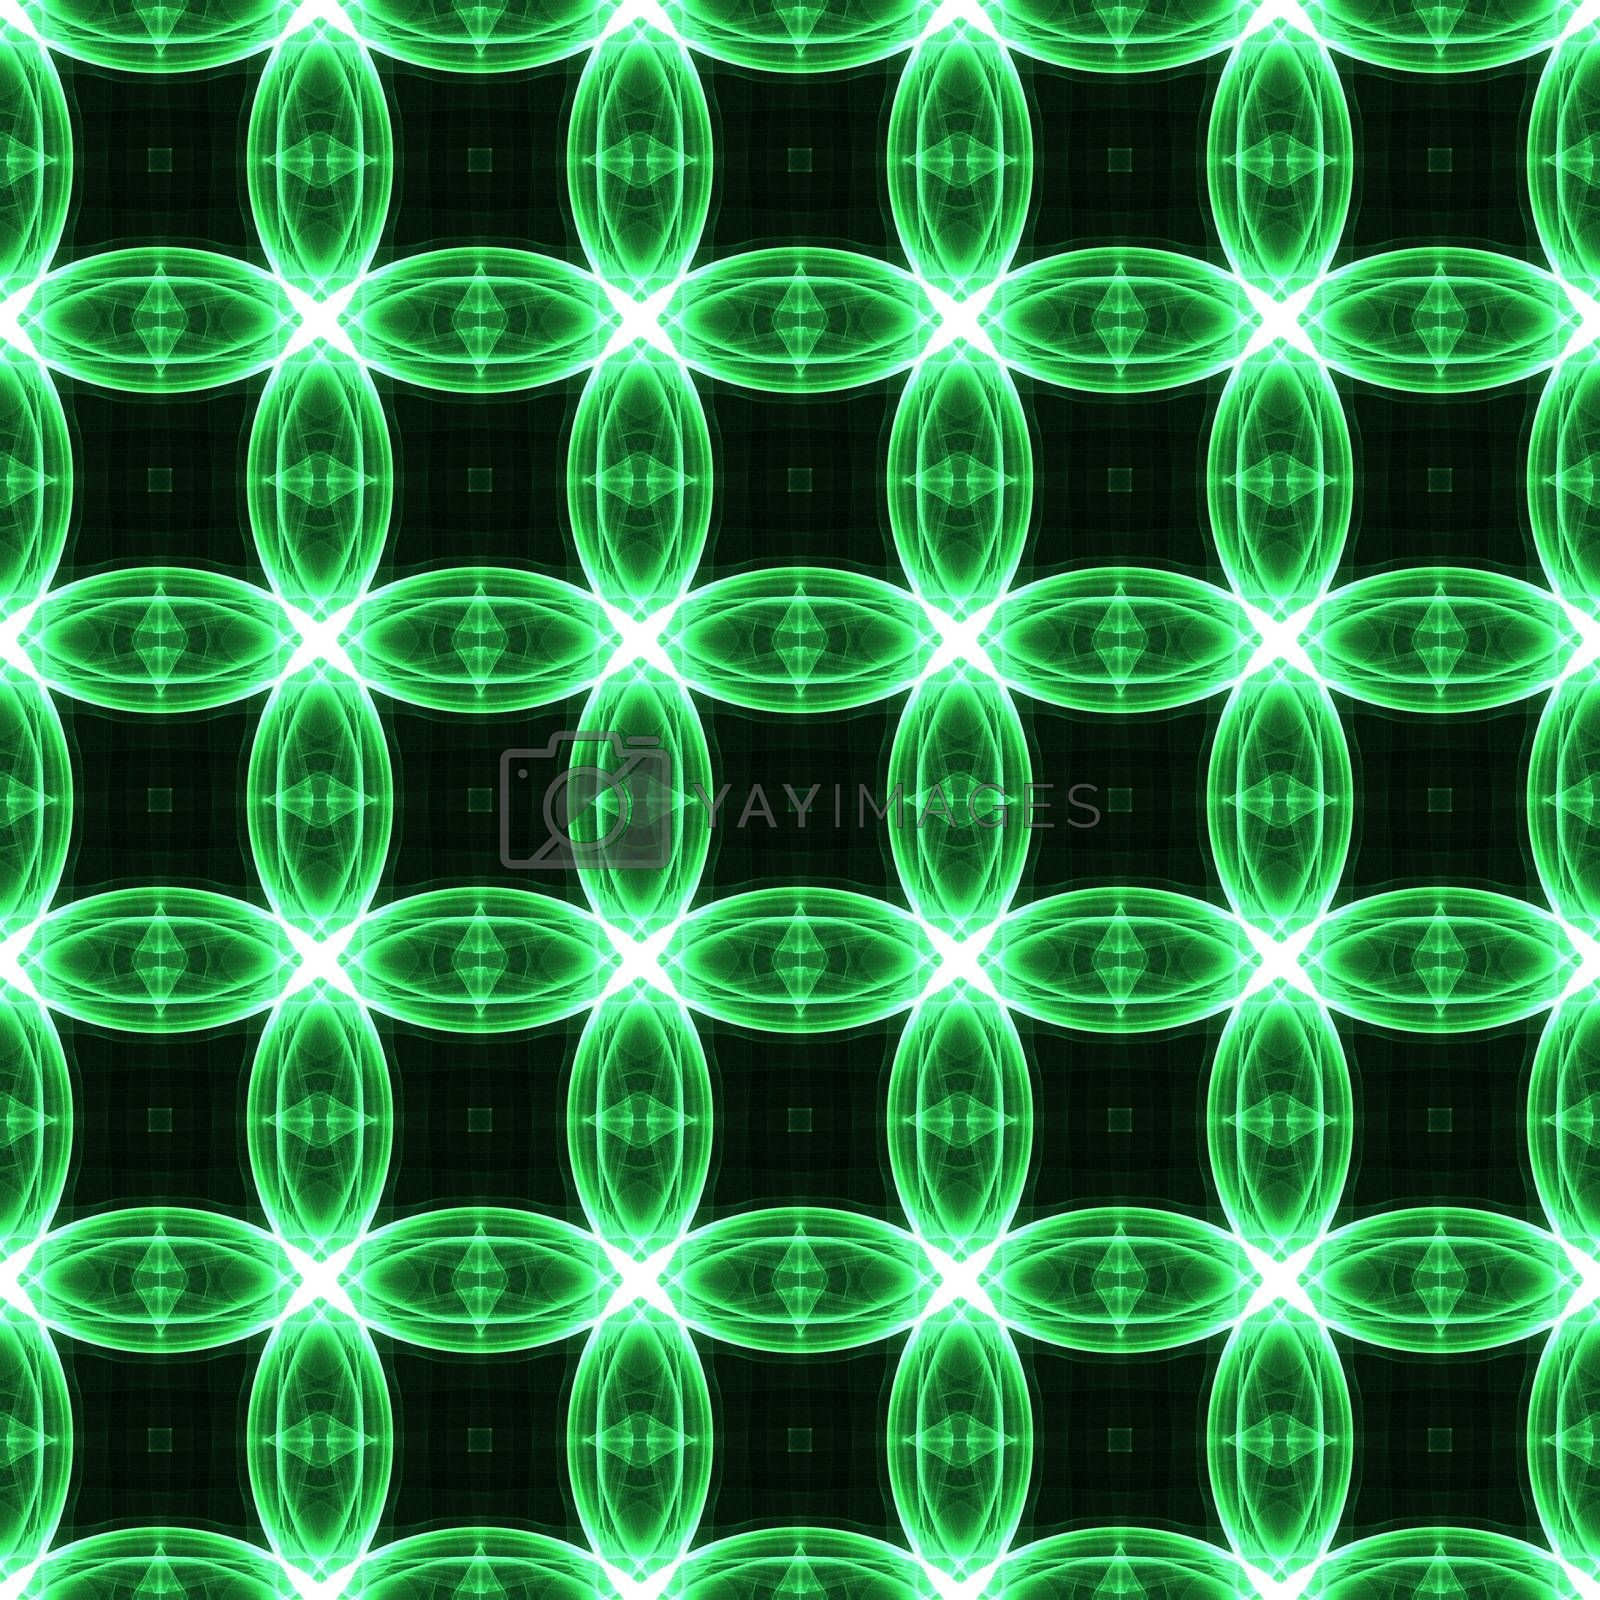 Drawing of Fractal seamless pattern in green colors